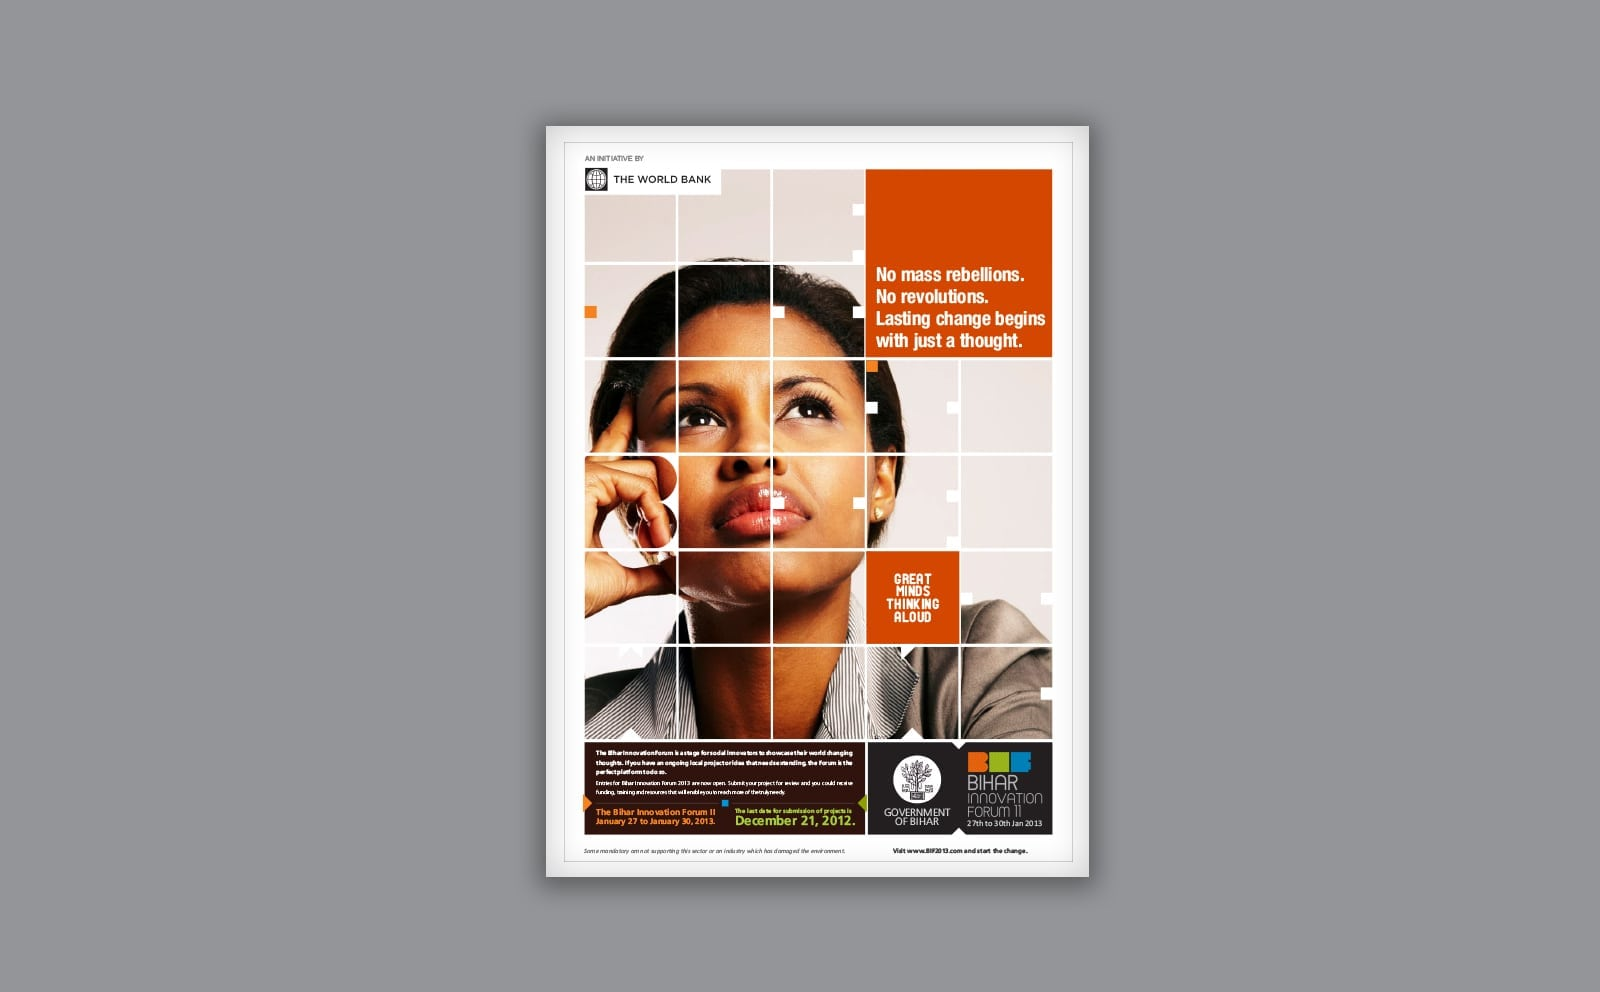 The World Bank Campaign